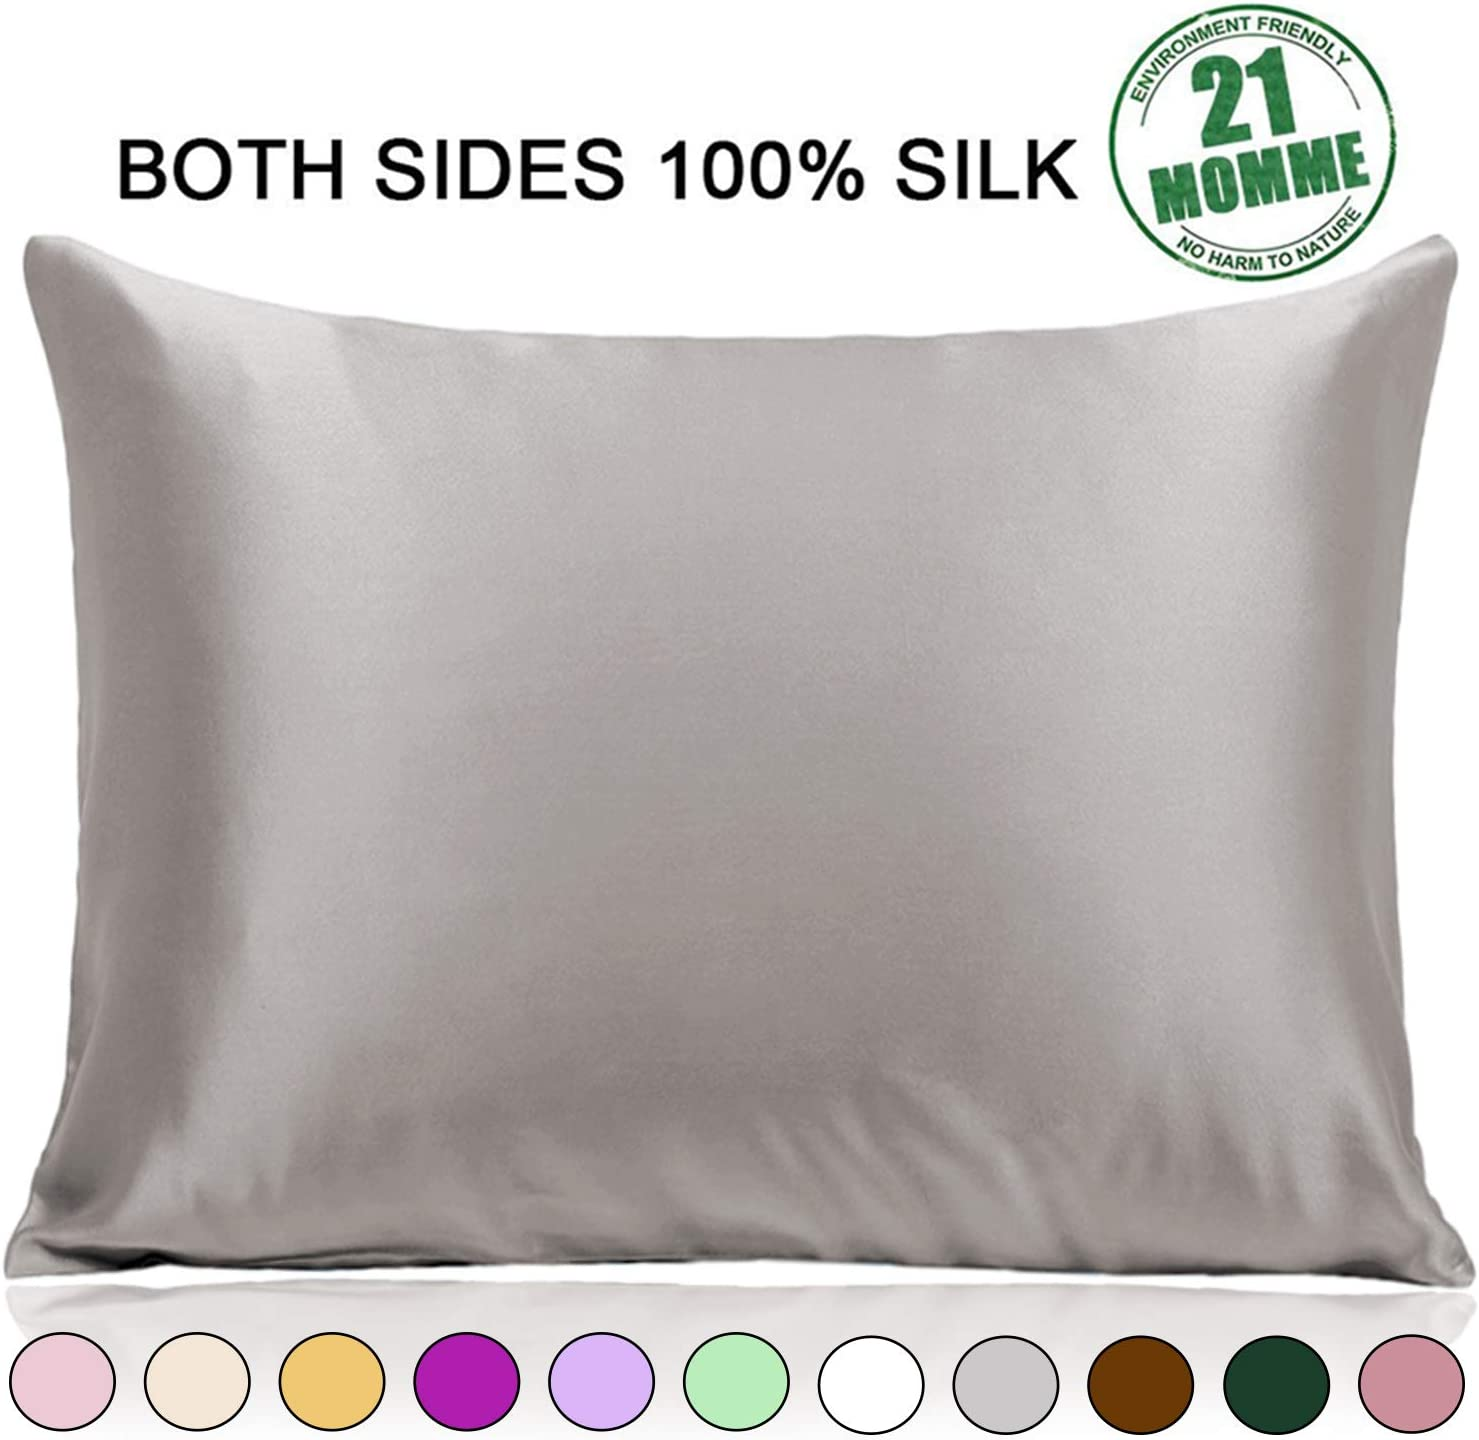 Ravmix 100% Pure Silk Pillowcase Standard Size For Hair And Skin With Hidden Zipper - Both Sides 21 Momme 600tc Hypoallergenic Mulberry Silk, 20×26 Inches, 1pcs, Apricot Gray Home & Kitchen